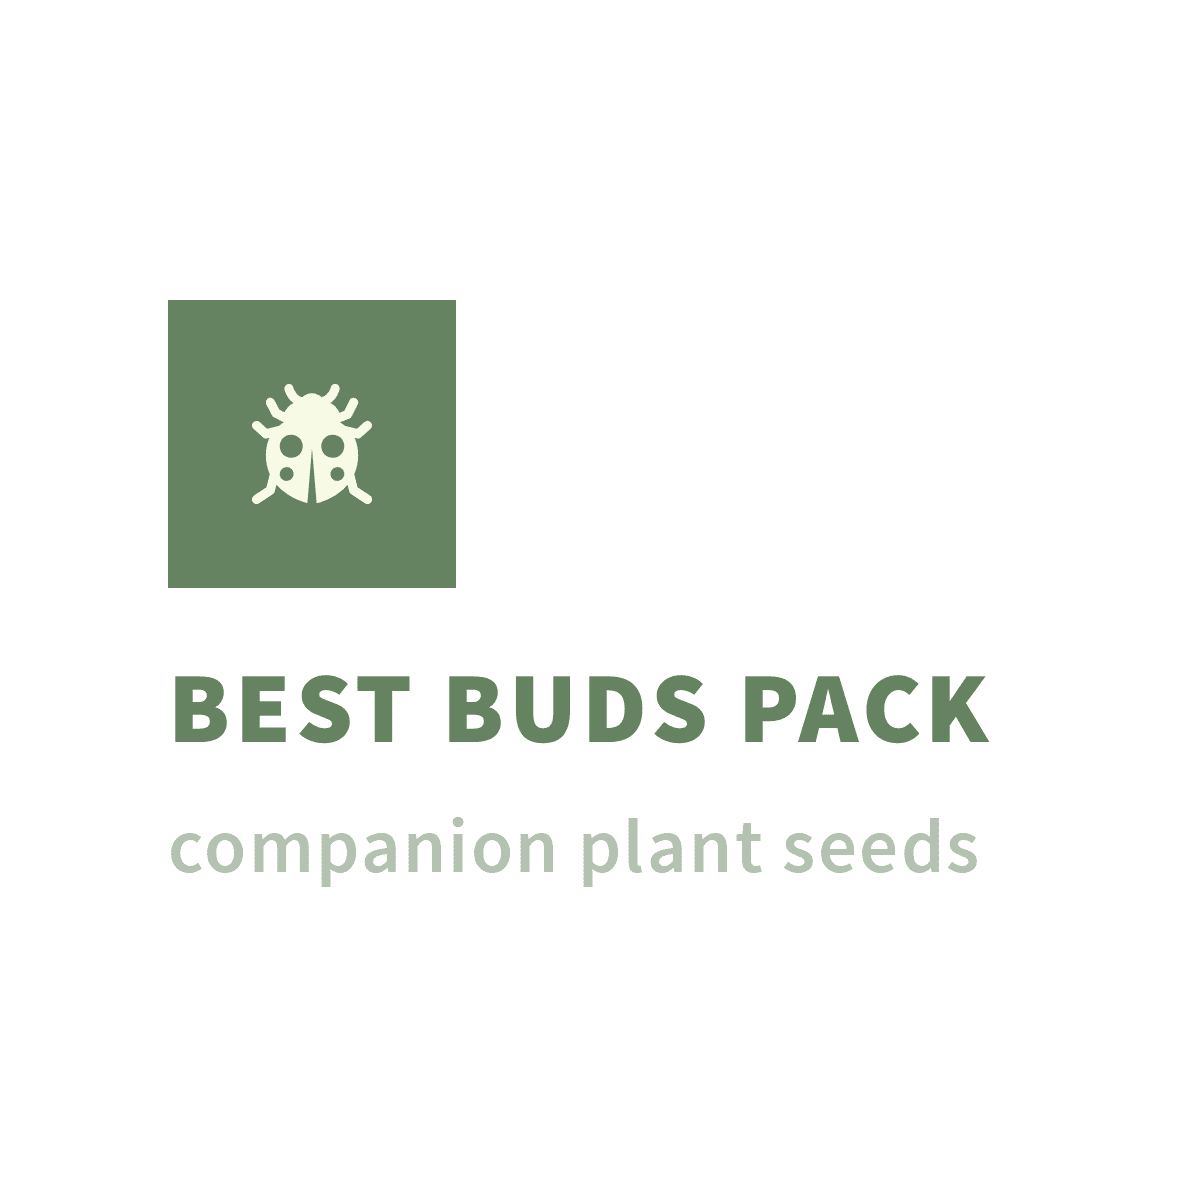 Lemon Balm Seeds  (Melissa officinalis) BEST BUDS PACK companion plant seeds